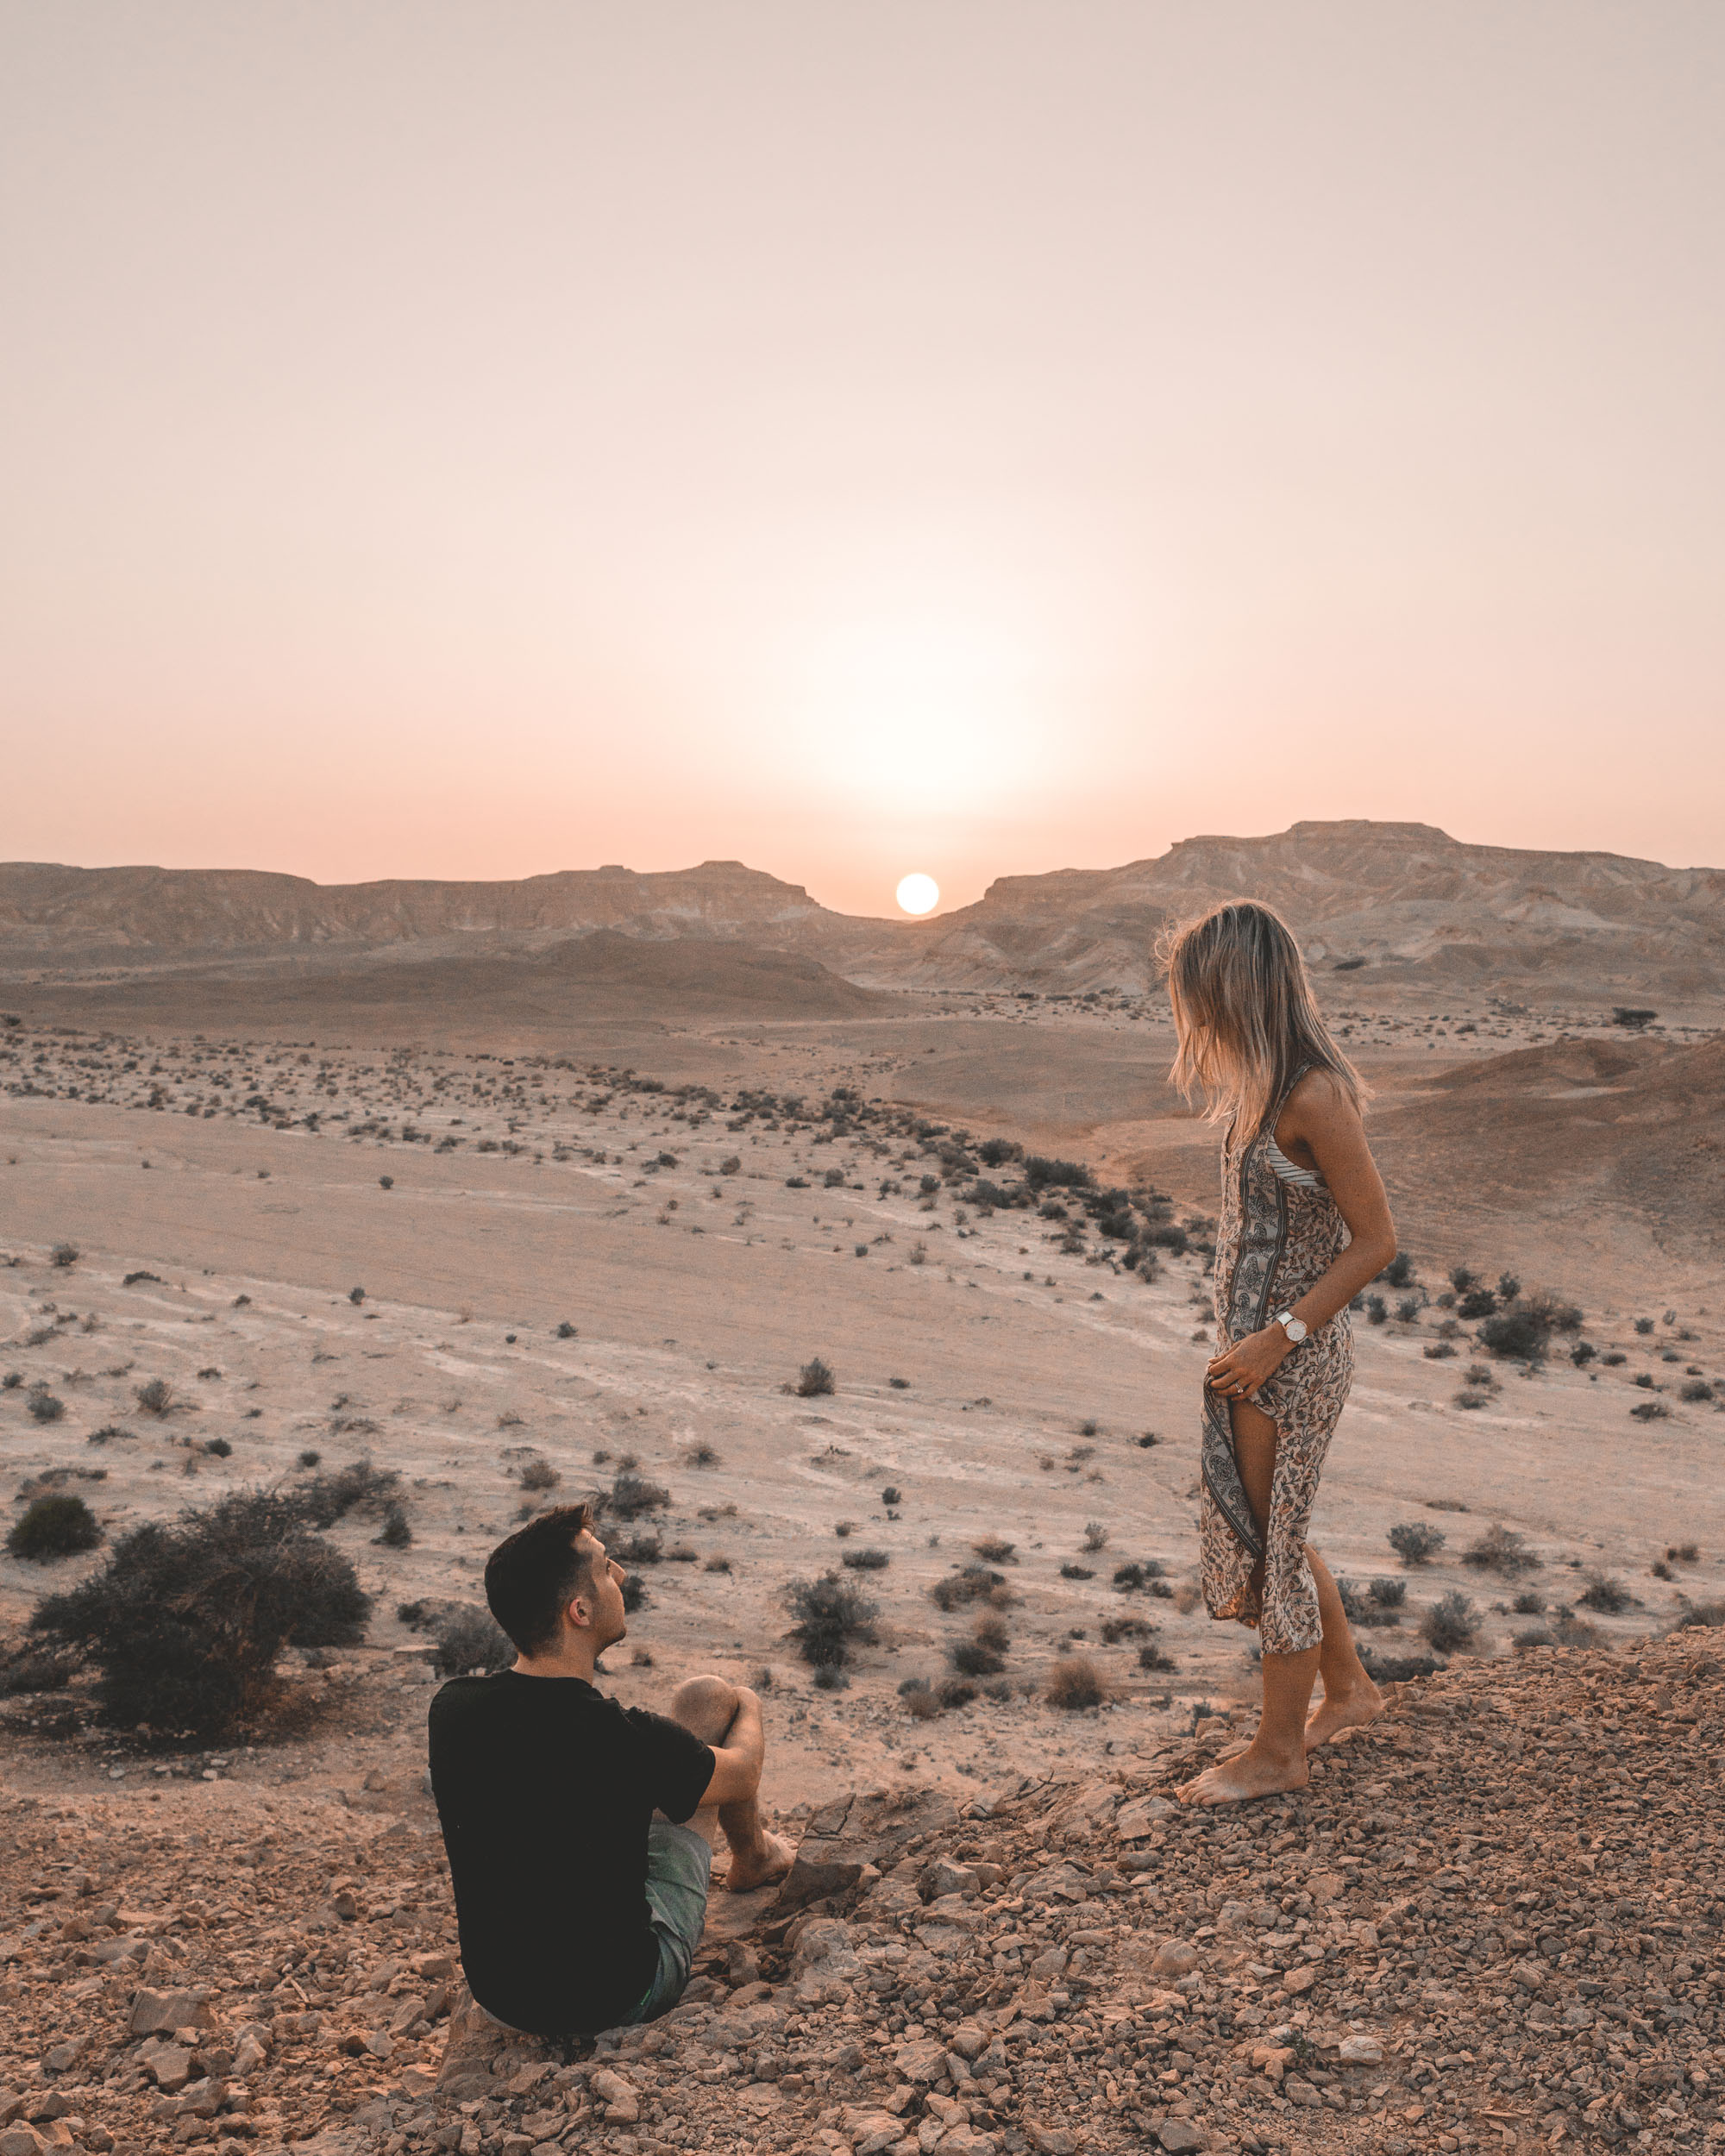 Negev desert at sunset in israel near dead sea find us lost